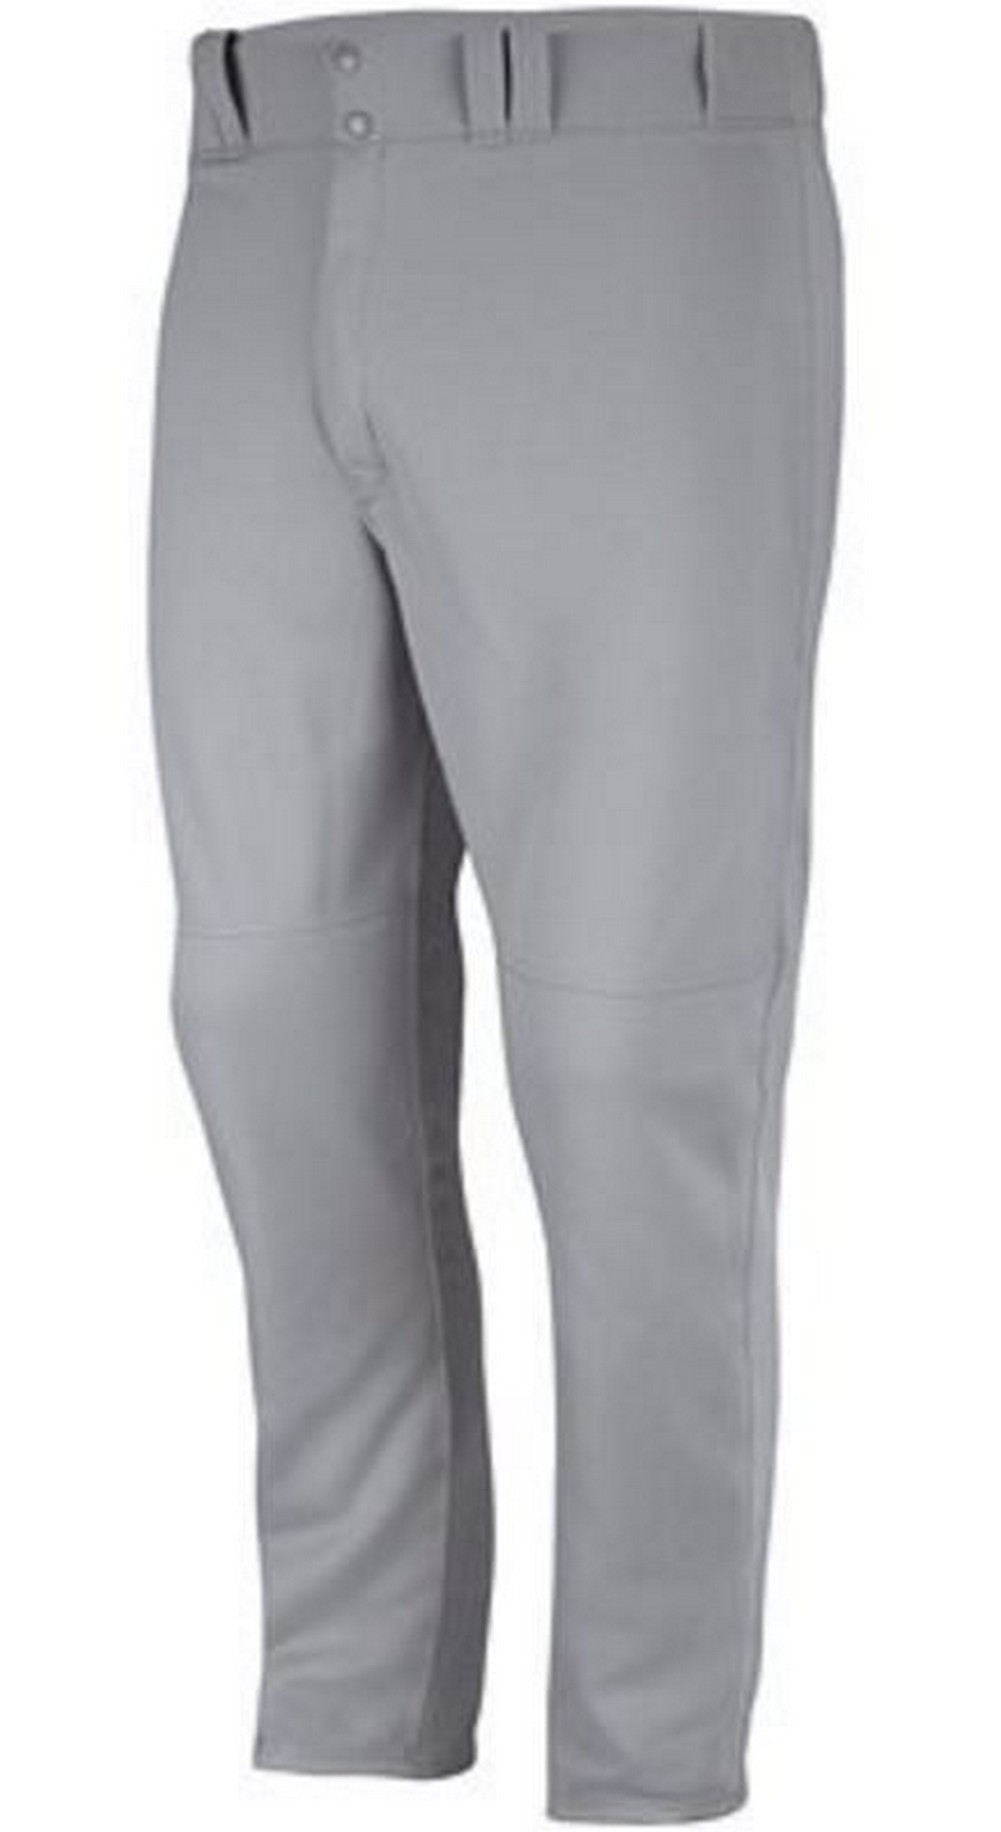 424faa96ed7b1 Majestic Men s MLB Cool Base HD Custom Inseam Baseball Pant Gray or White  G013